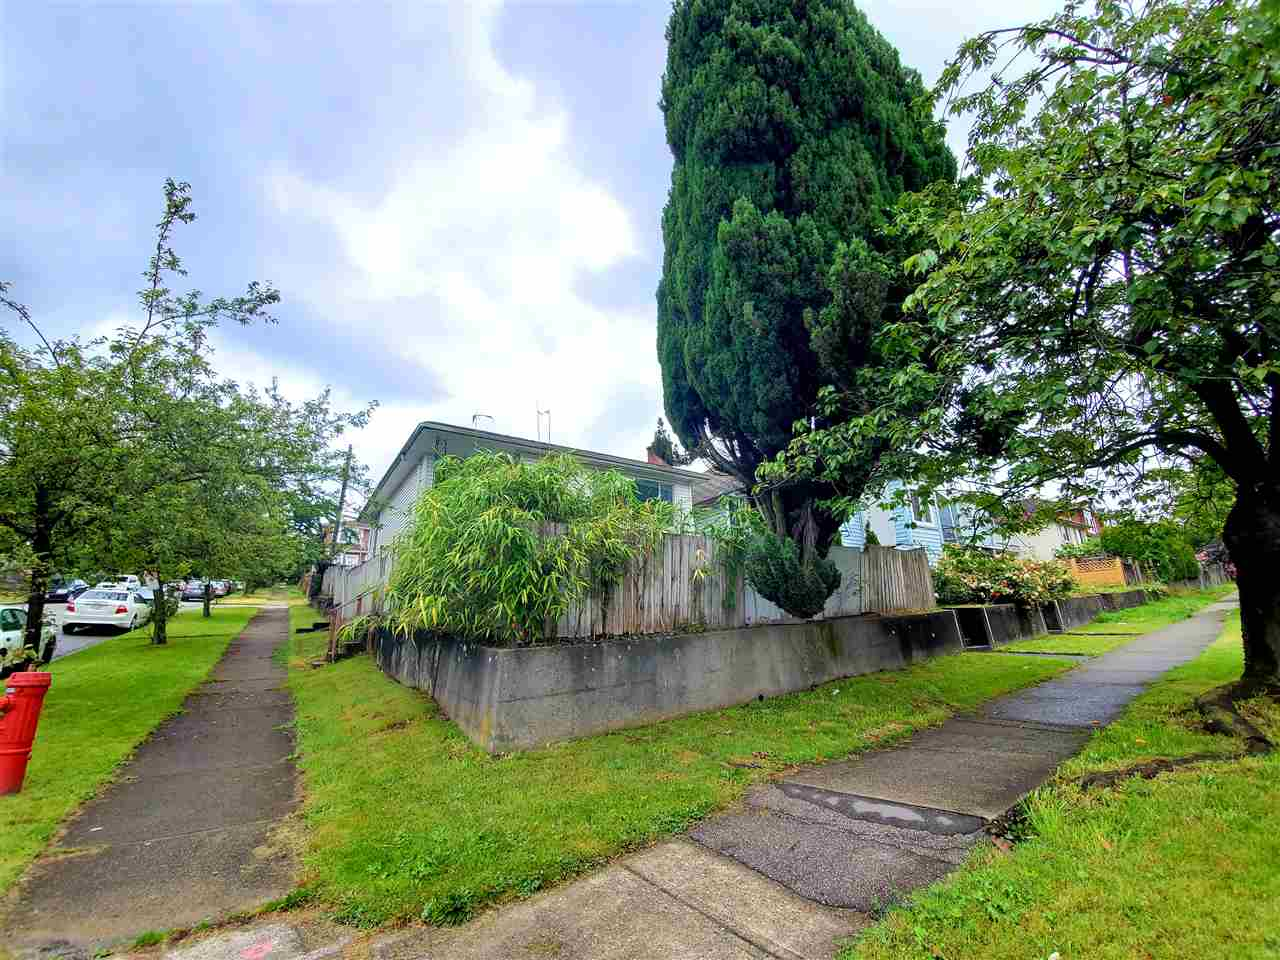 805 SE MARINE DRIVE - South Vancouver House/Single Family for sale, 4 Bedrooms (R2468891)